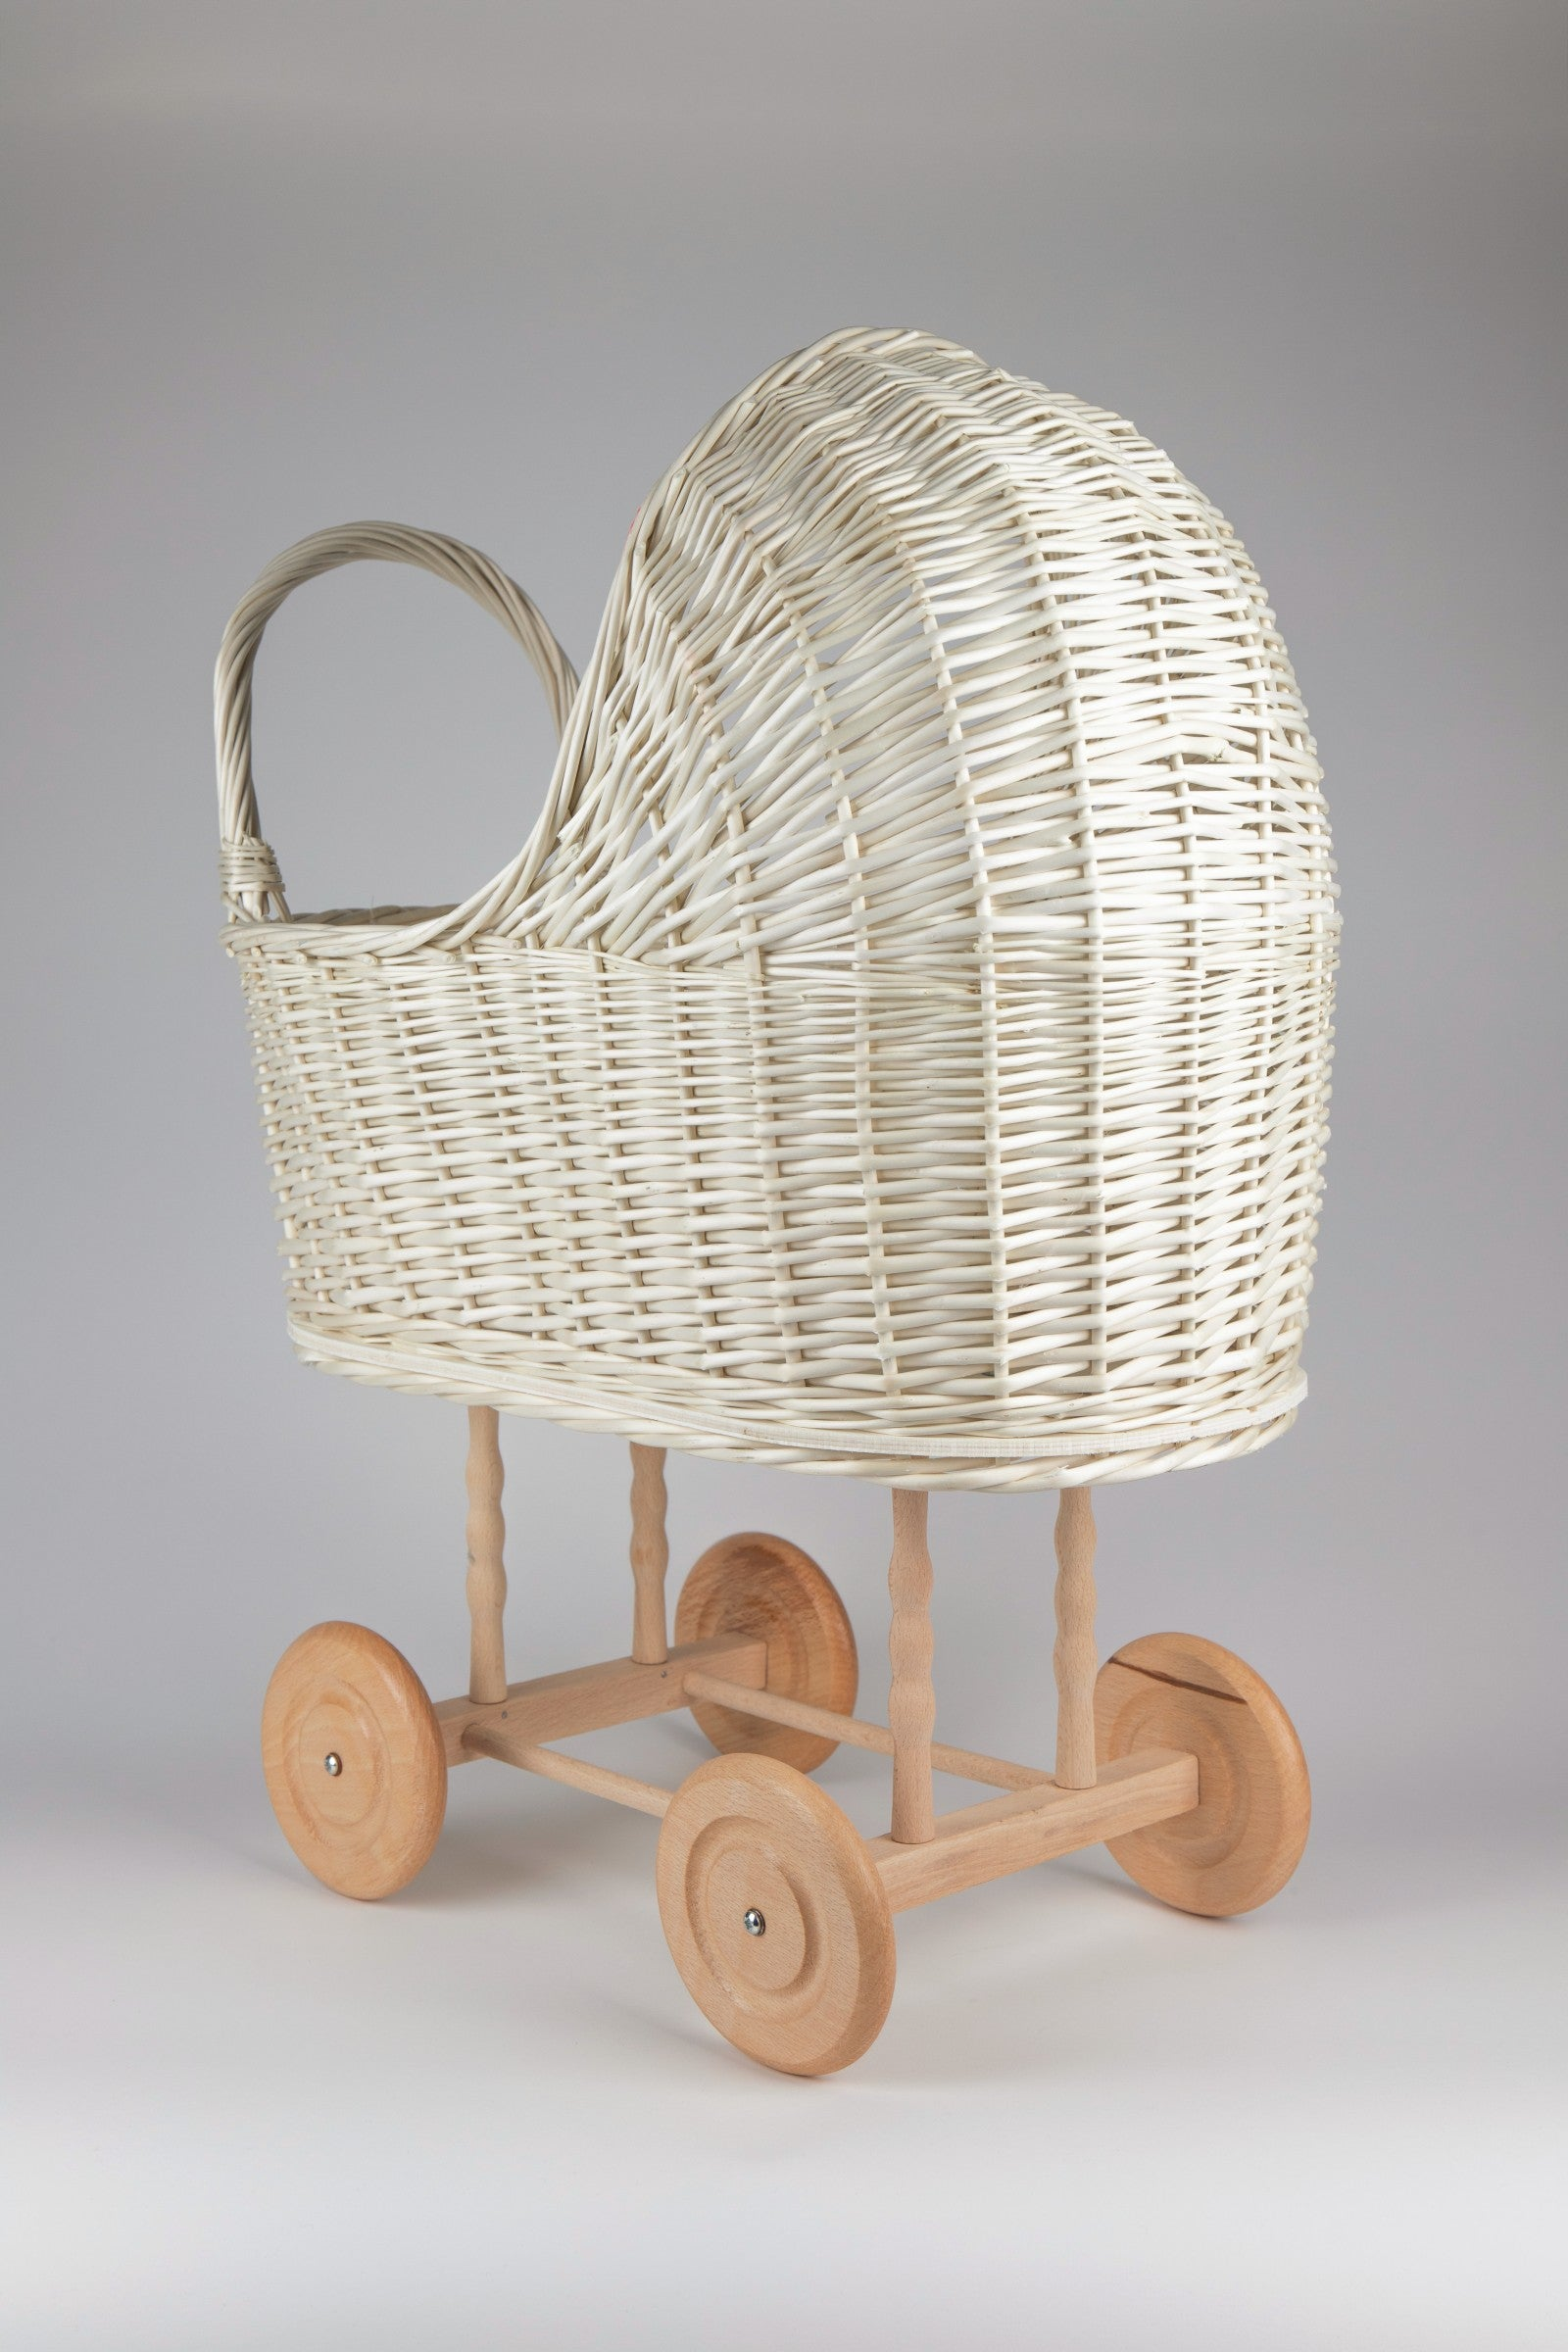 Wicker Baby Carriage, Wicker Doll Stroller, Wicker Doll Pram, Natural Doll Carriage, Wicker Willow Doll Stroller, Doll Stroller, Doll Pram